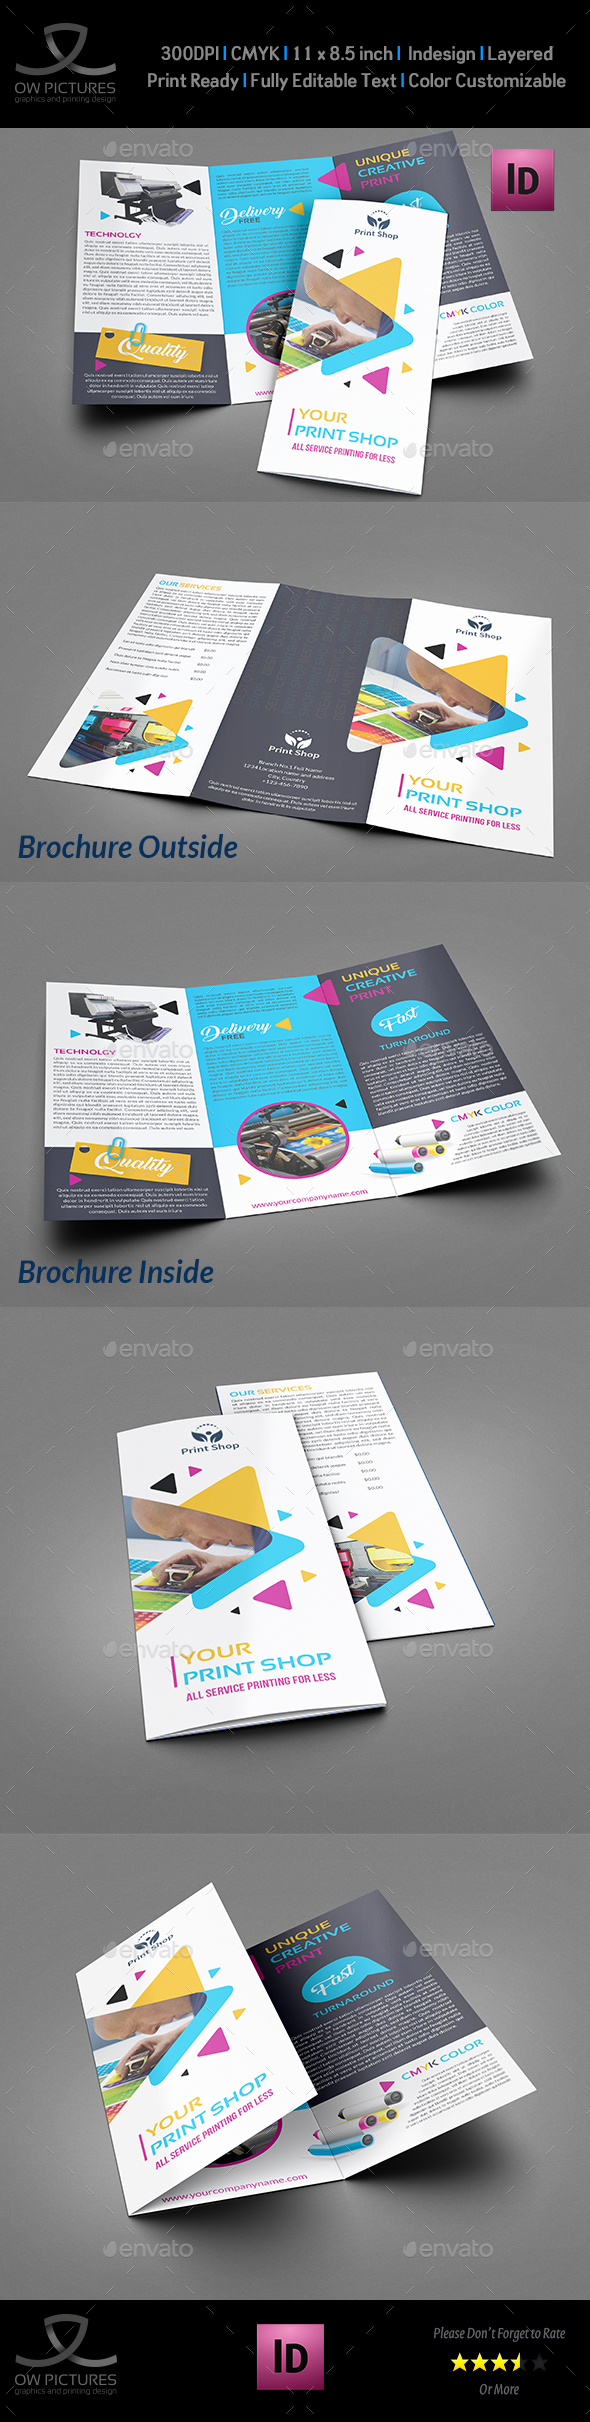 Print Shop TriFold Brochure Template By OWPictures GraphicRiver - Print brochure templates